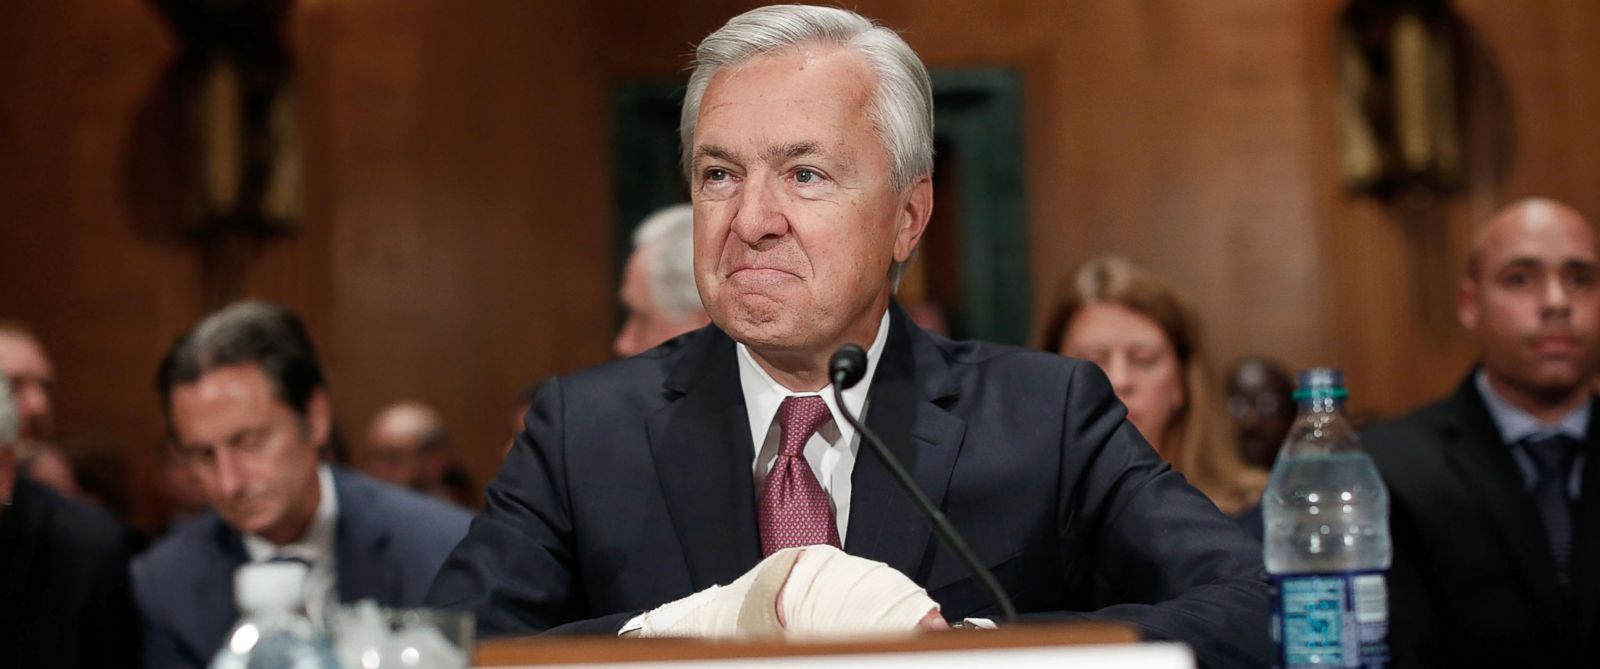 PHOTO: John Stumpf, chairman and CEO of the Wells Fargo & Company, prepares for testimony before the Senate Banking, Housing and Urban Affairs Committee, Sept. 20, 2016, in Washington.